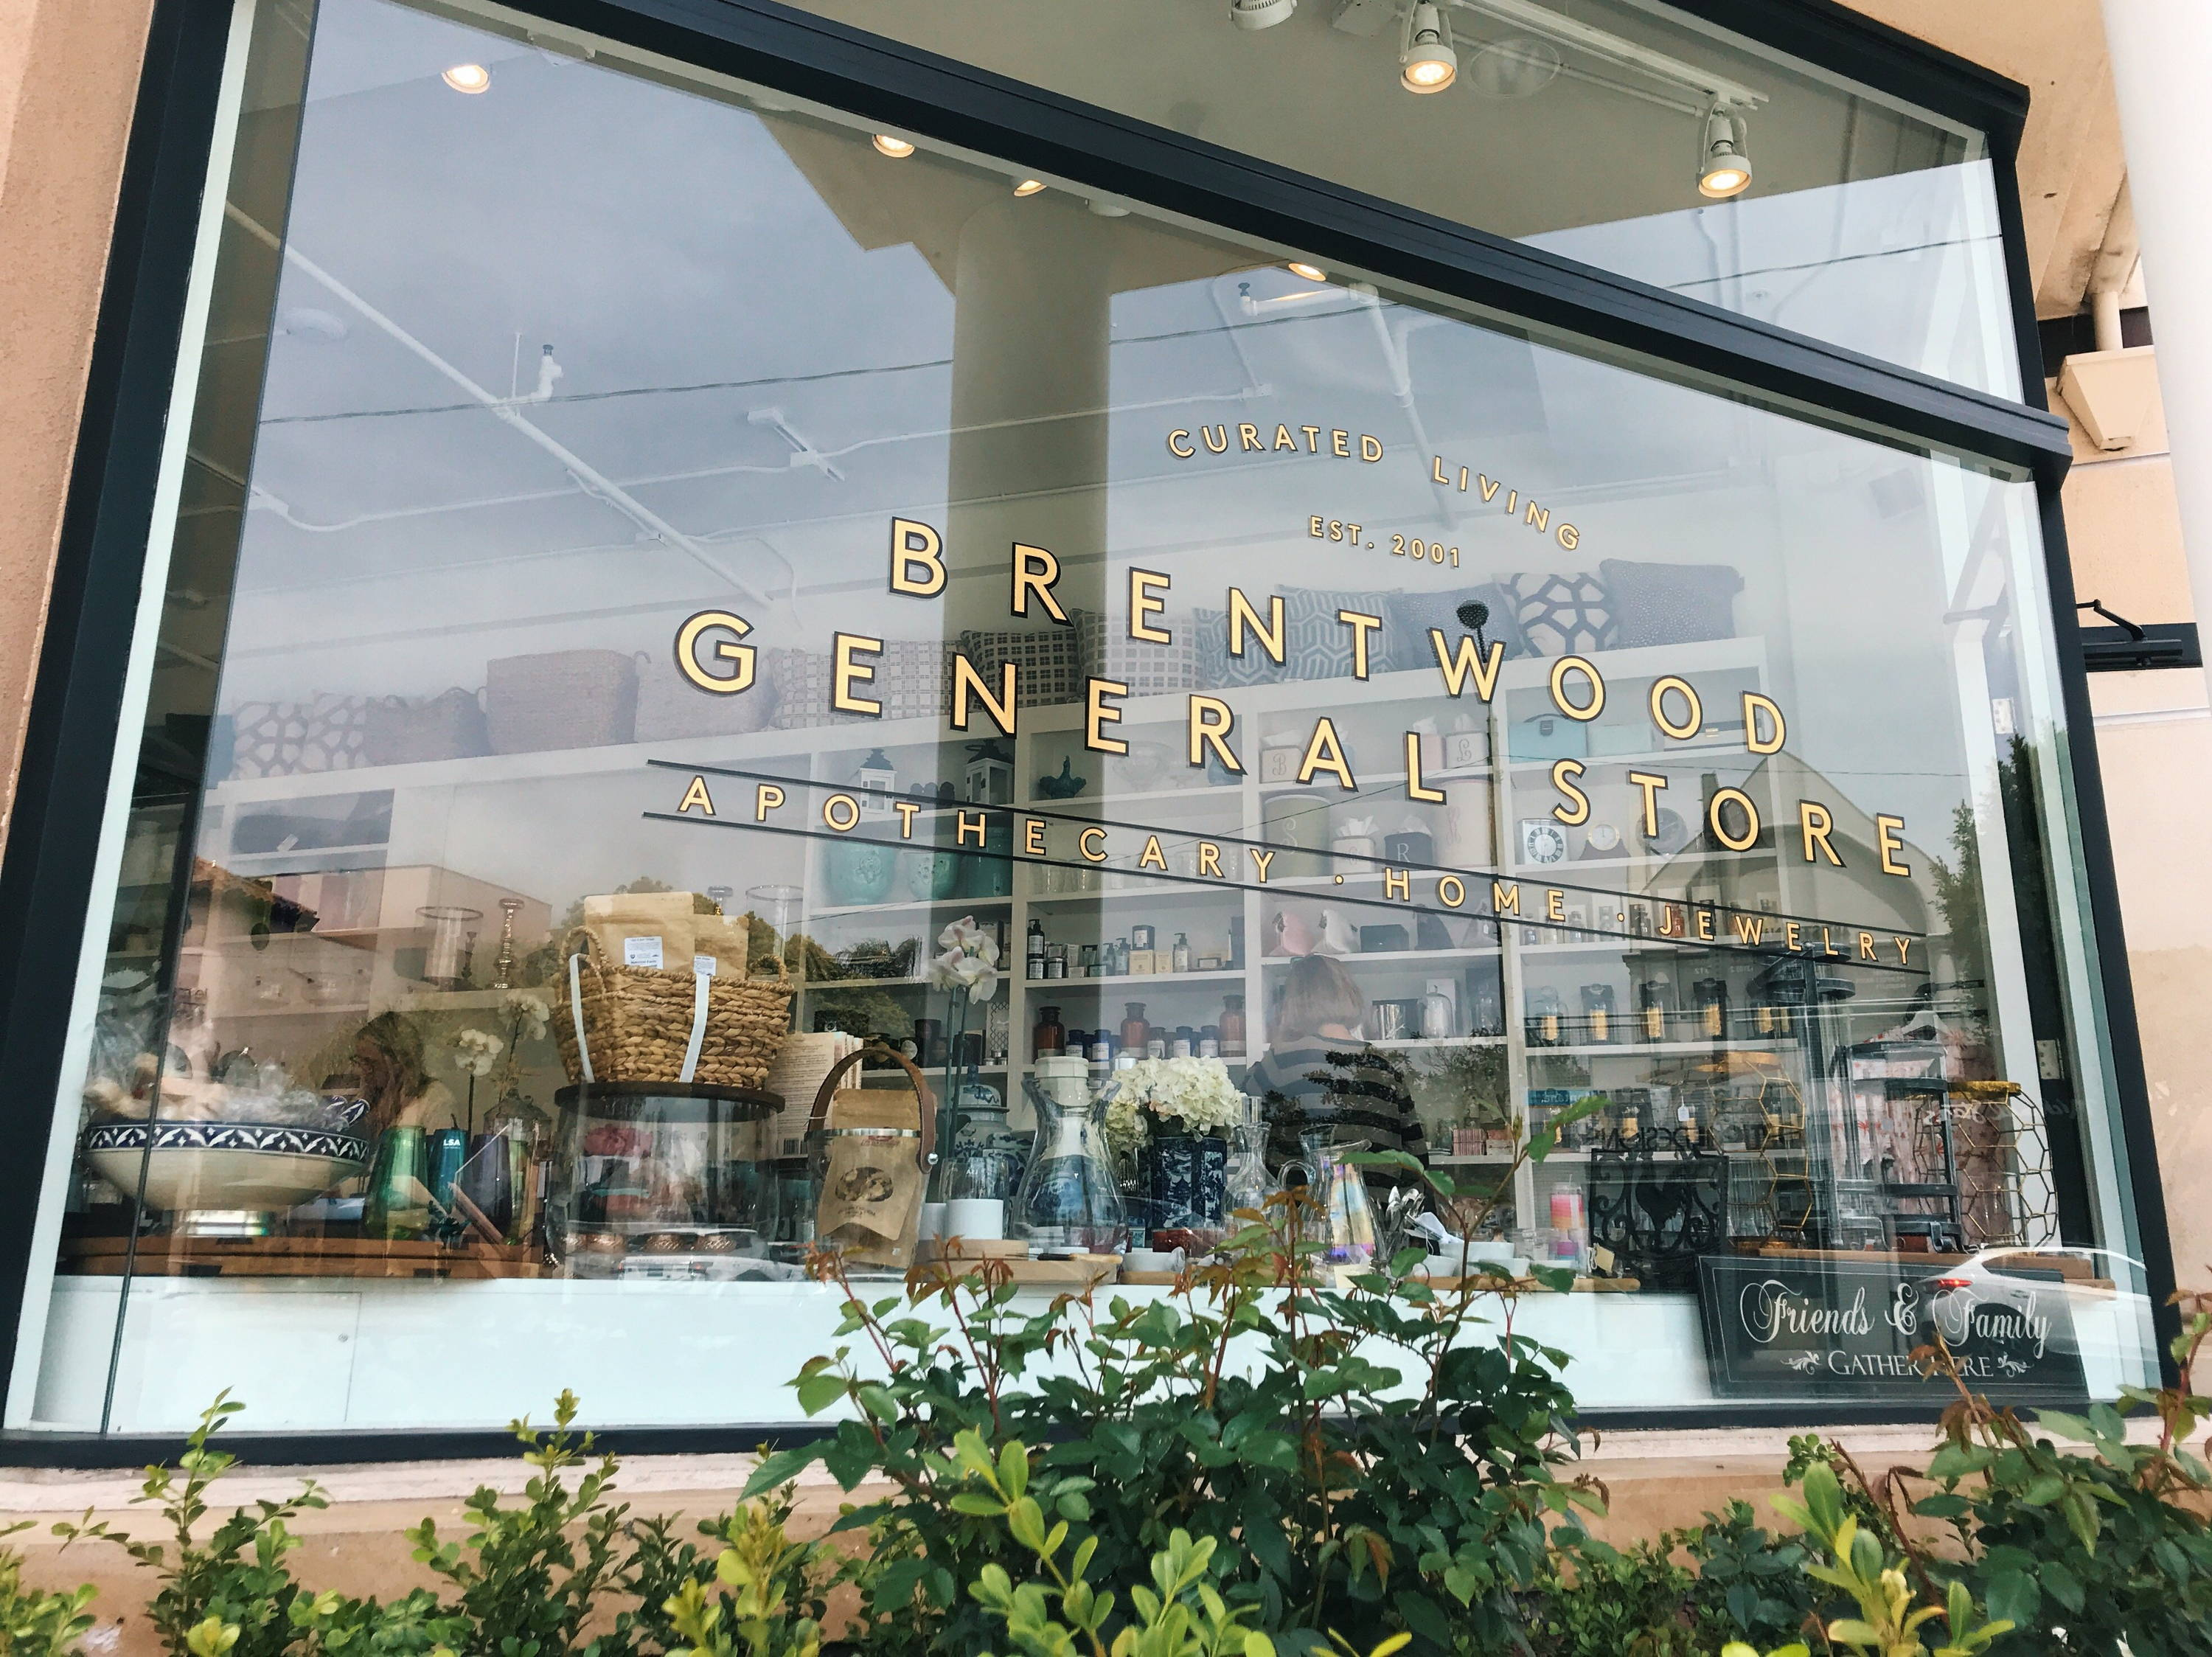 Brentwood General Store Exterior Window Signage